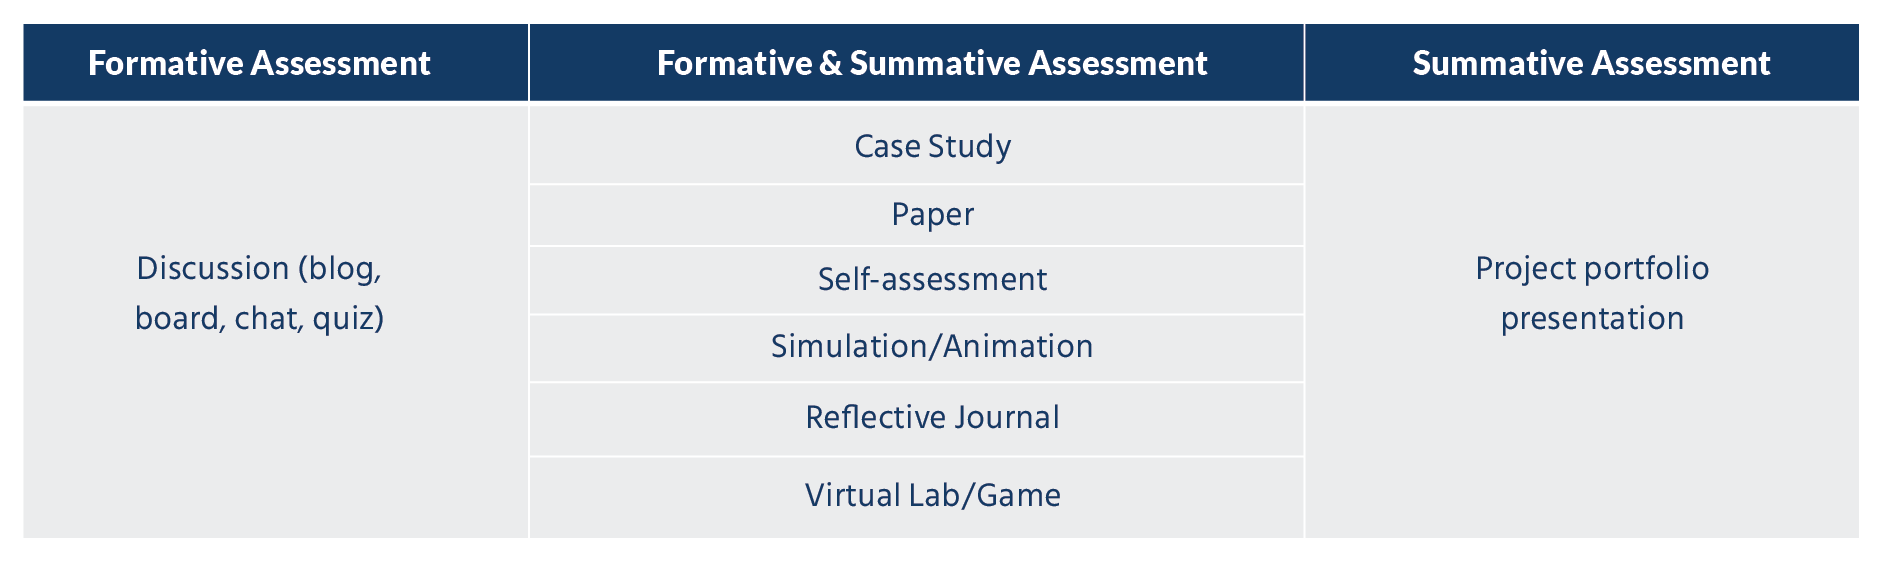 formative_assessment